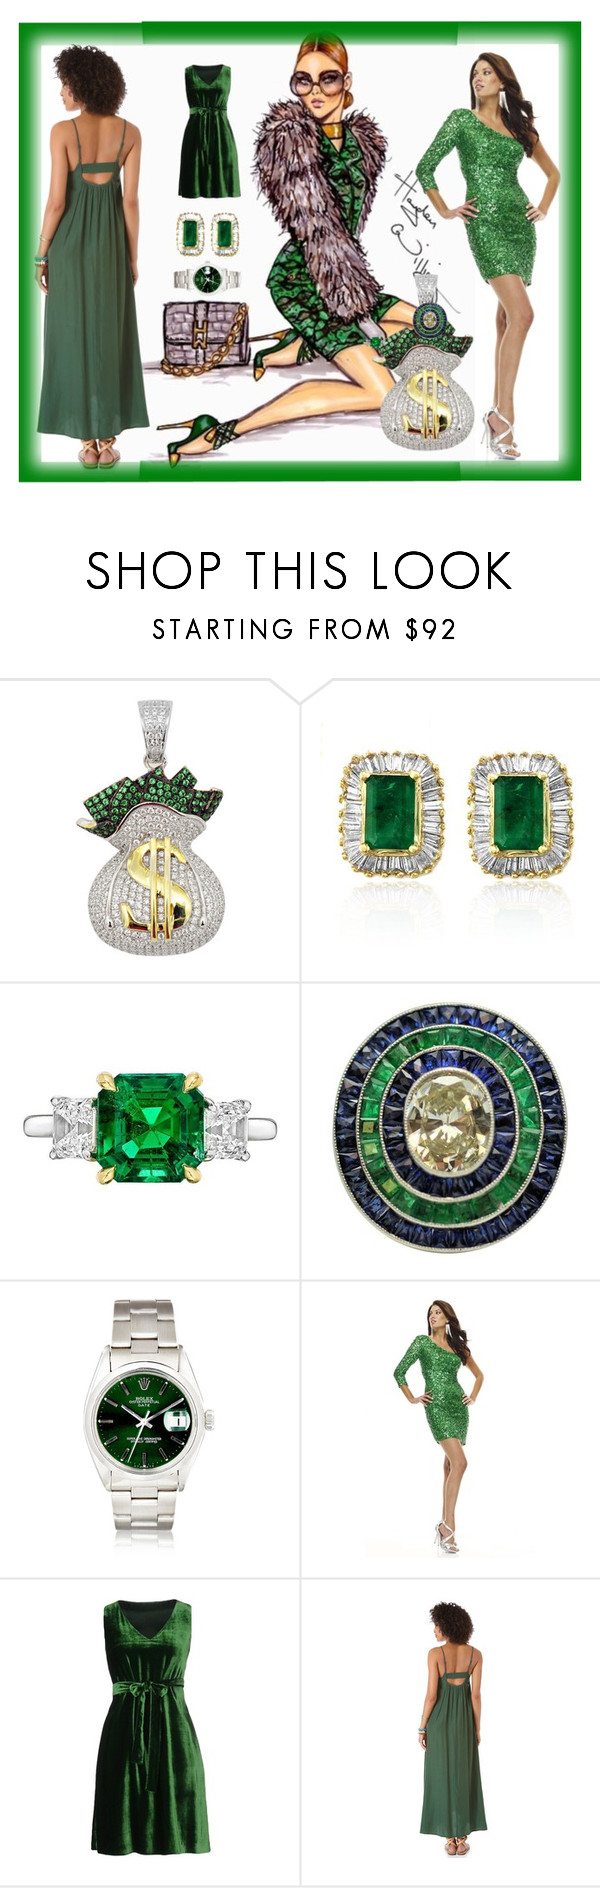 """Green with Envy!"" by bren-johnson ❤ liked on Polyvore featuring Effy Jewelry, Betteridge, Scala and Aspesi"